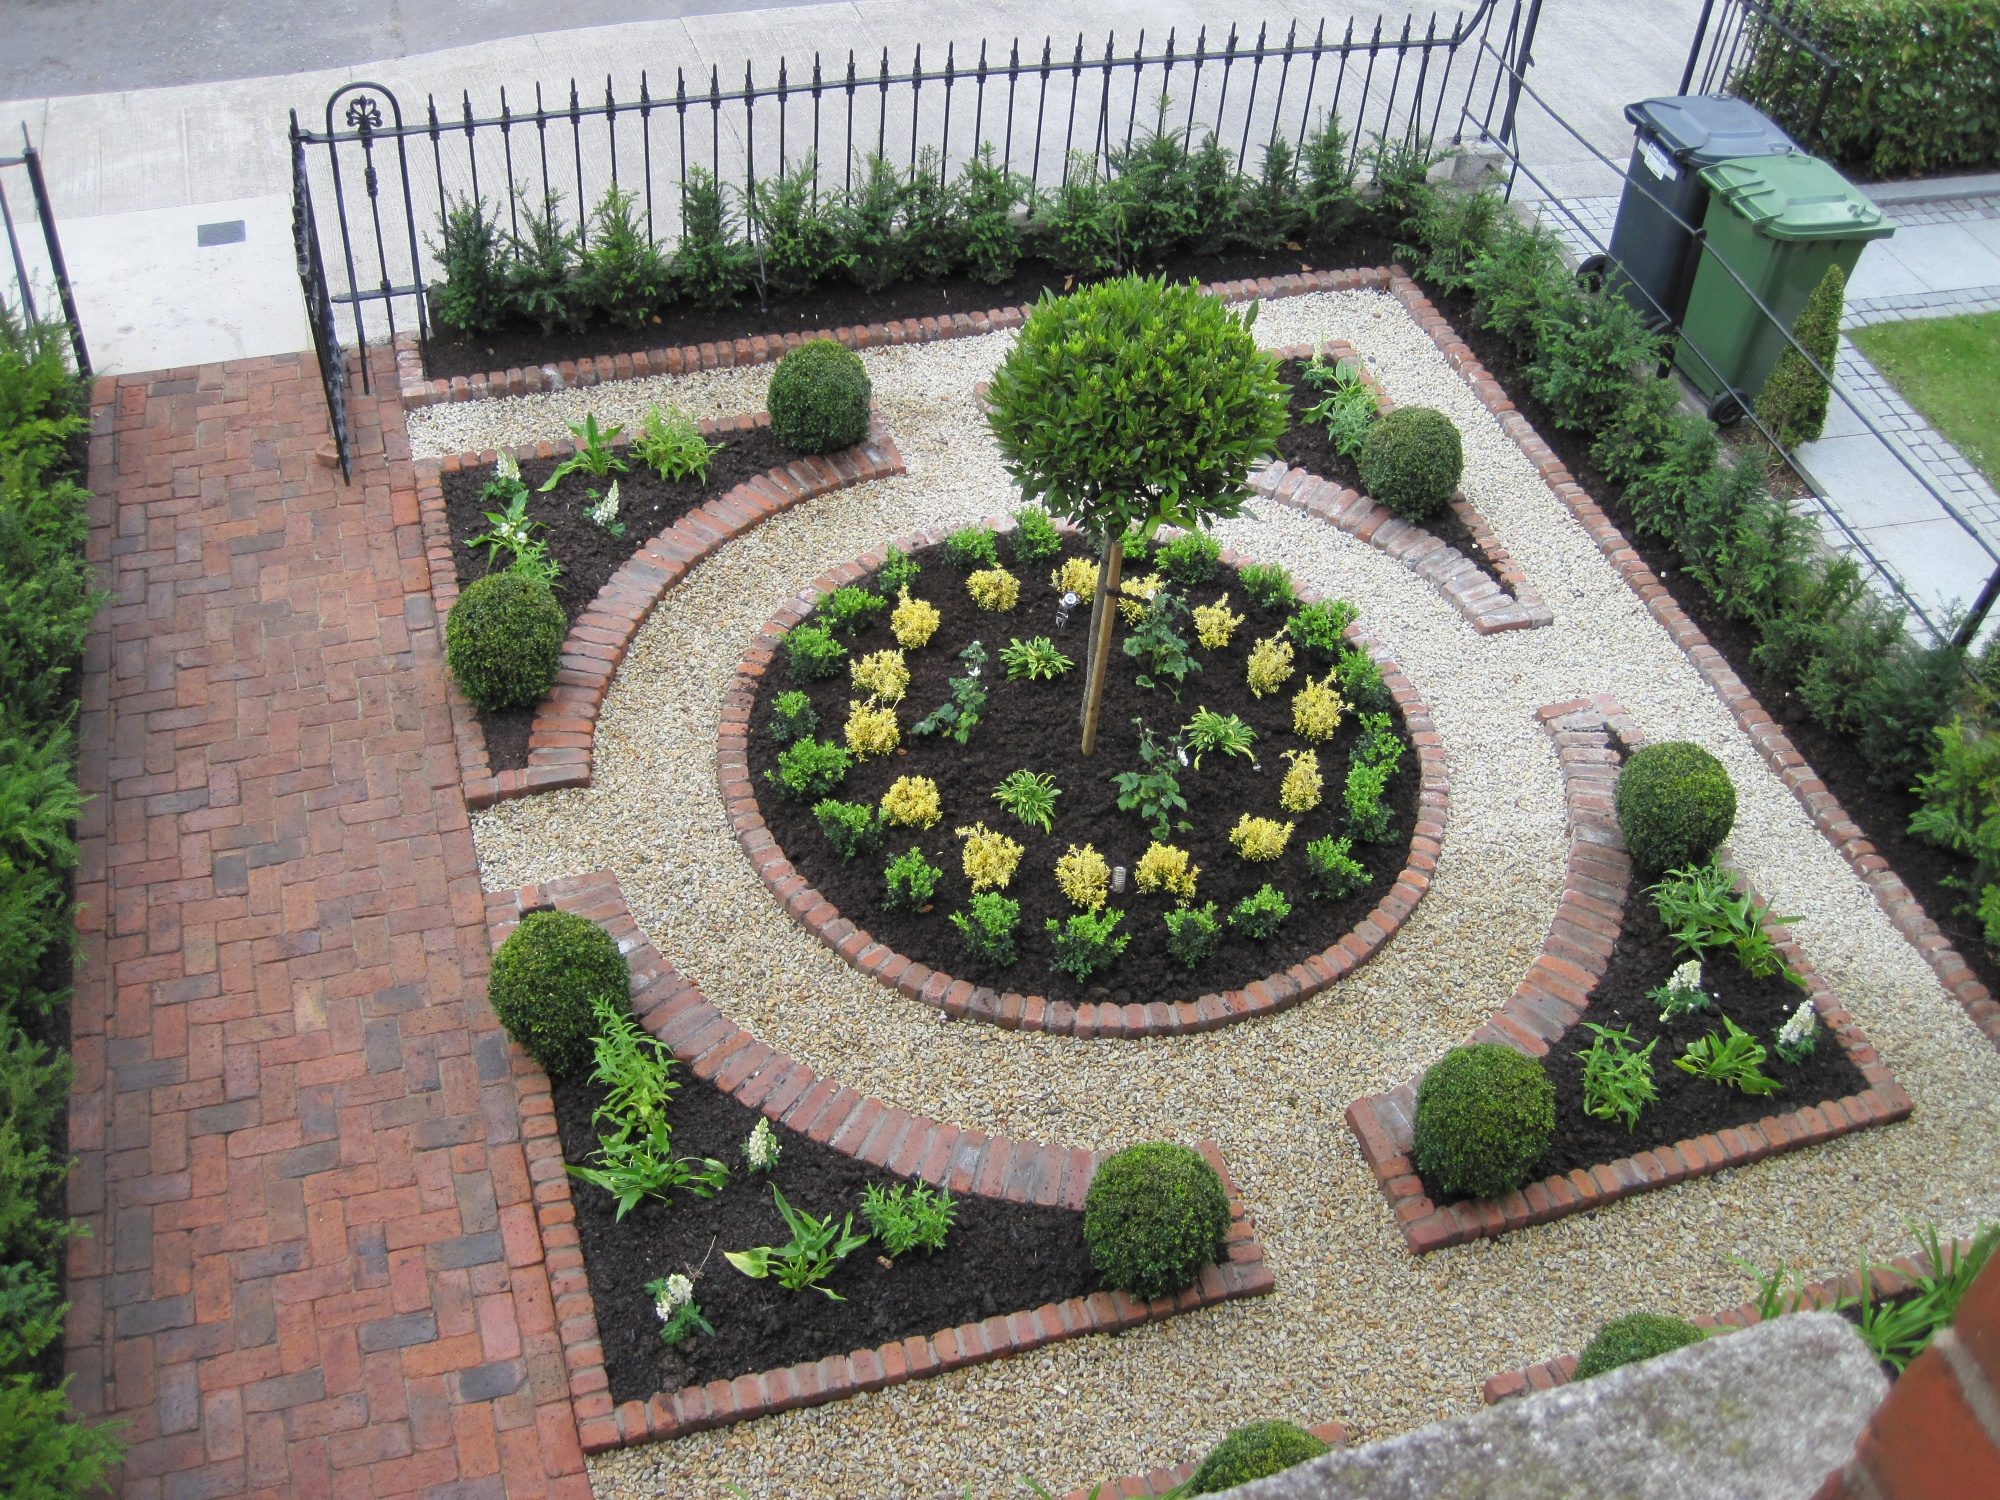 Garden design ideas inspiration advice for all styles for Landscape design pictures